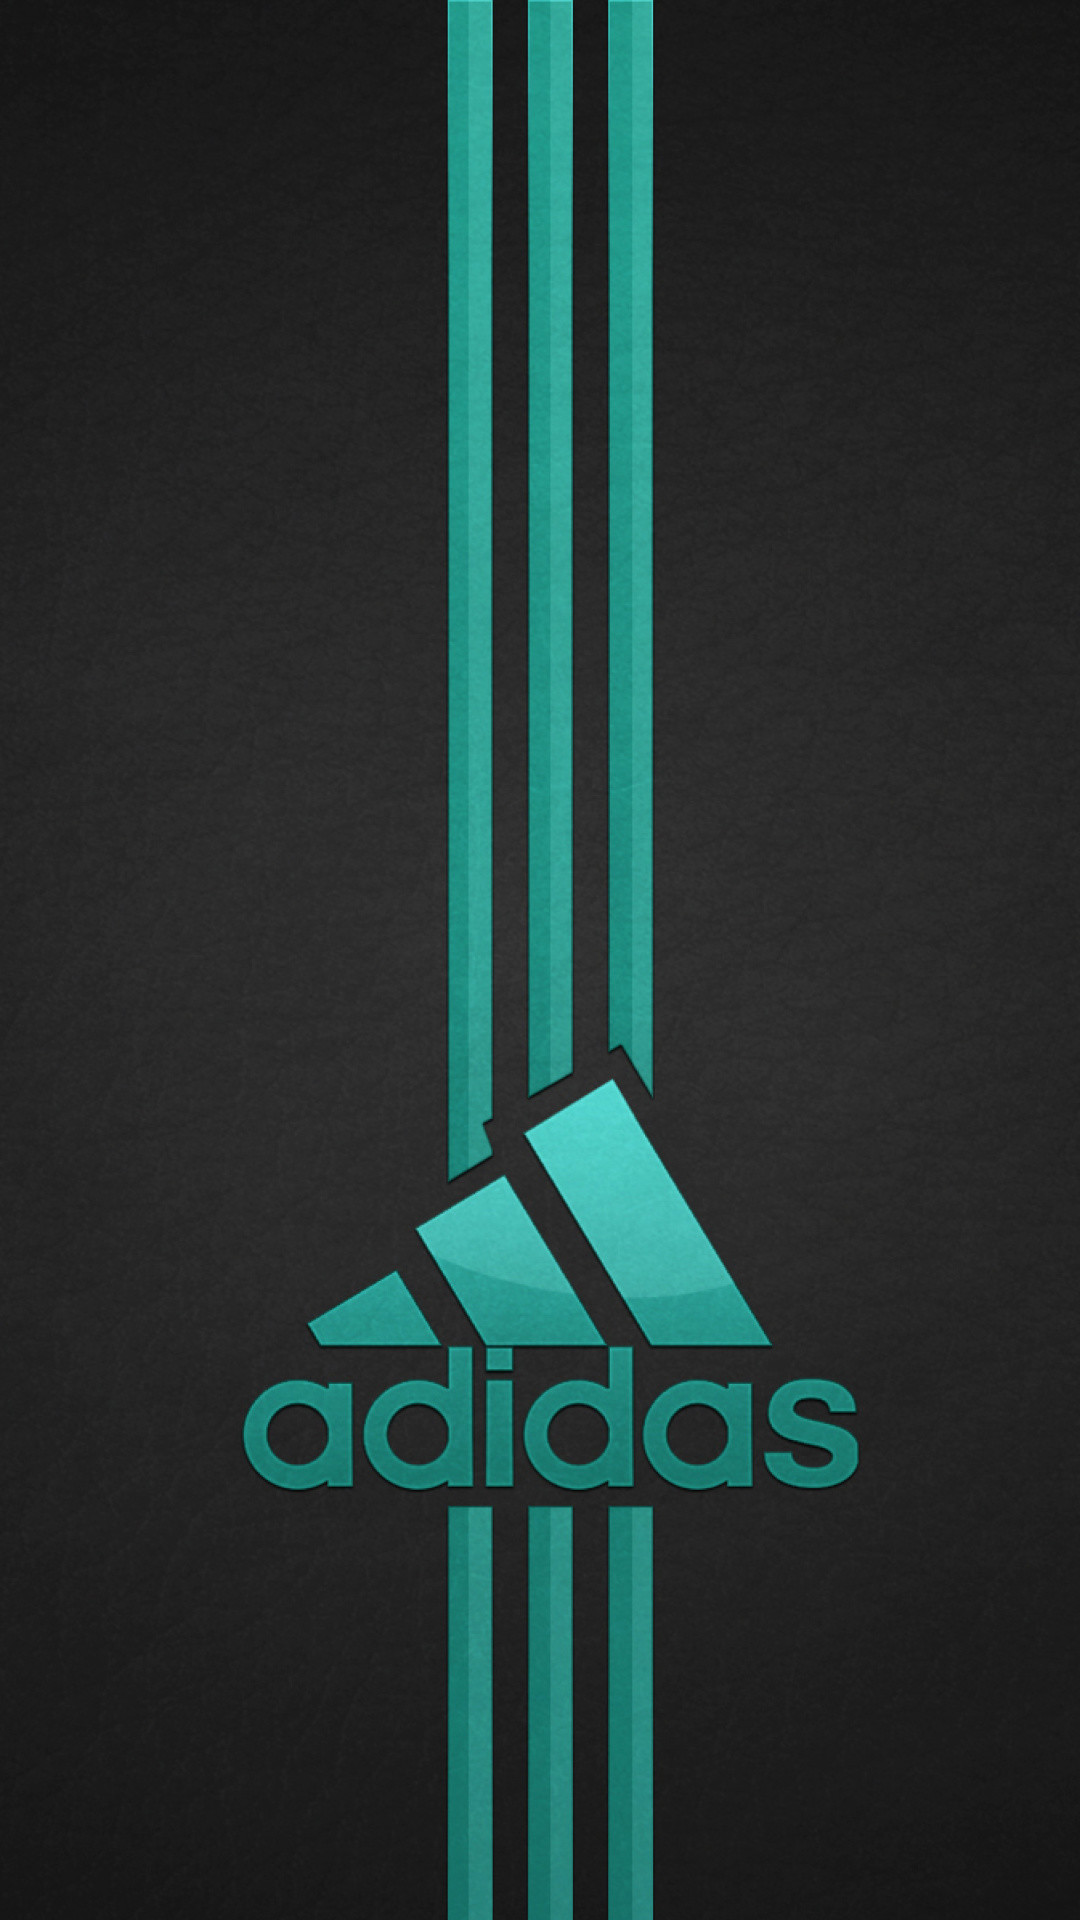 1080x1920 adidas iphone originals logo 1080×1920 wallpaper hd wallpapers download free windows wallpapers amazing